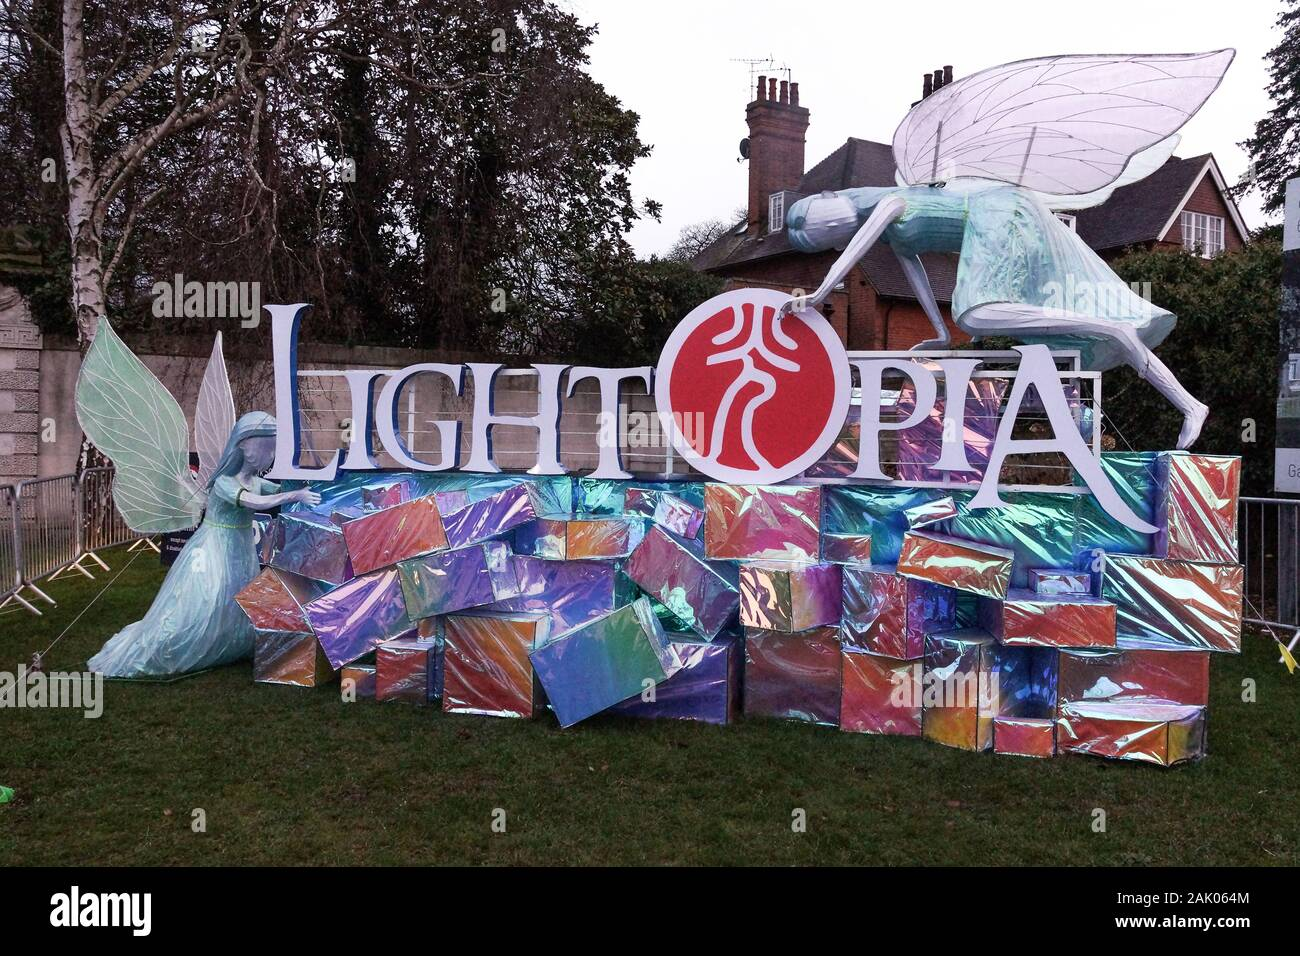 london uk 06th jan 2020 chiswick house prepares for lightopia festival due to open 22 january 2020 and will run until 01 march 2020 lightopia festival combines light displays water displays and acrobats credit peter hoganalamy live news 2AK064M - Lightopia Chiswick House And Gardens 22 January